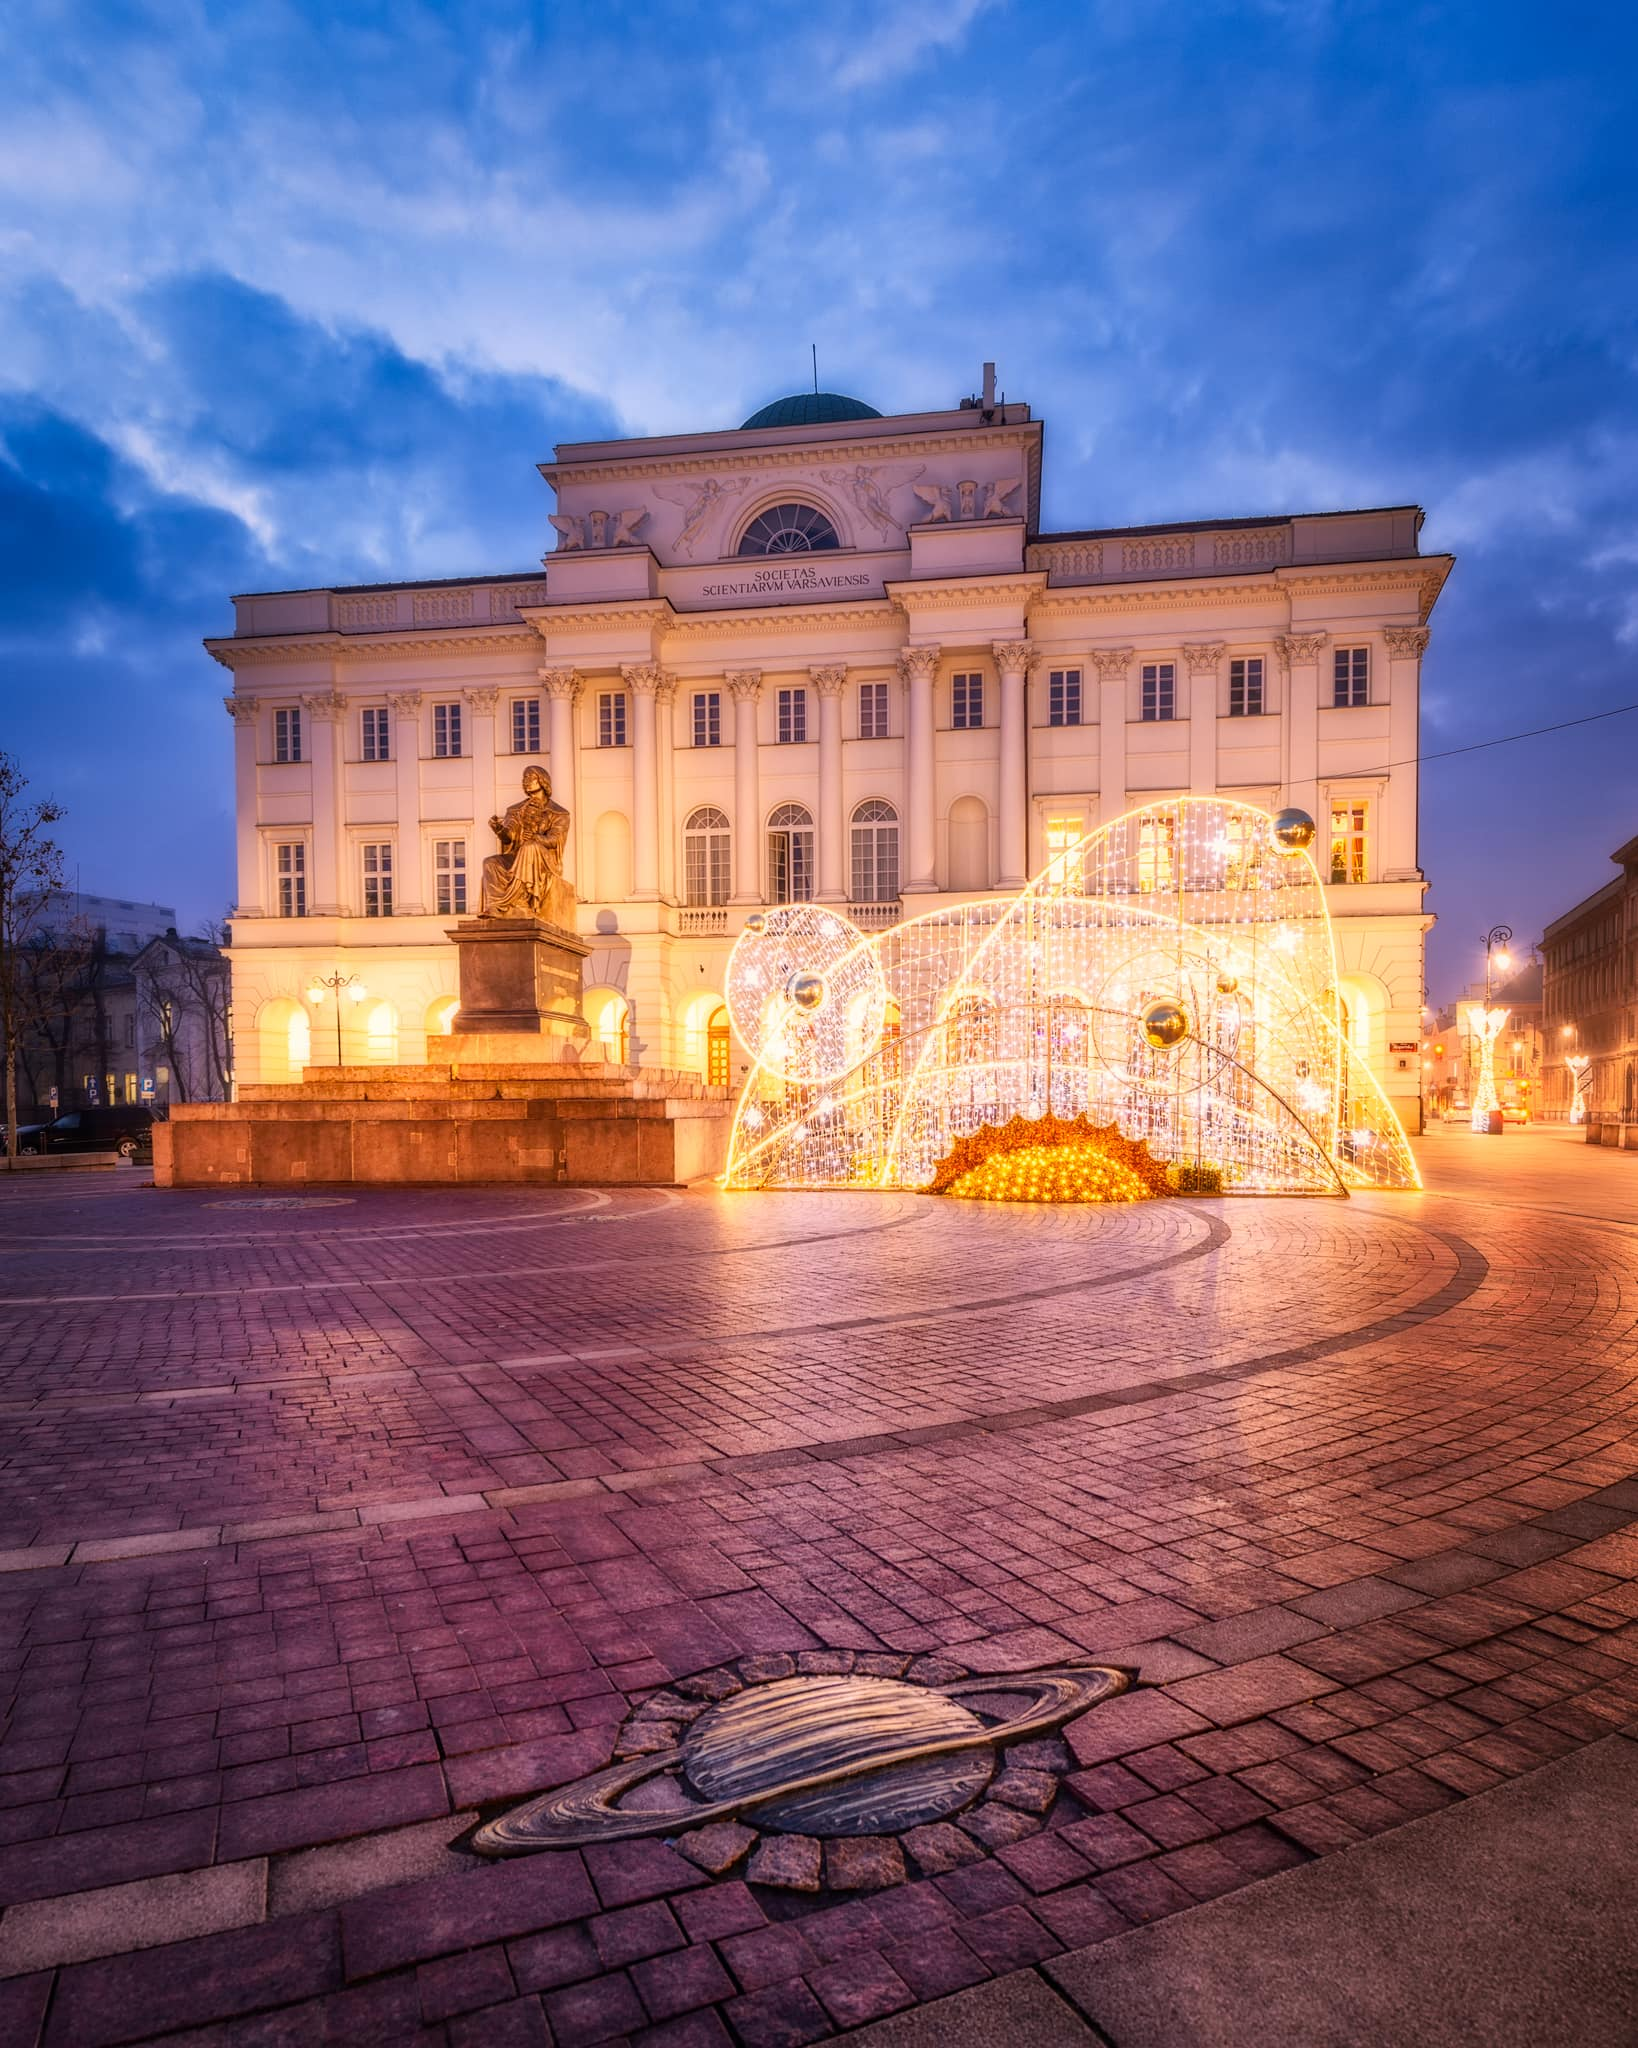 Nicolaus Copernicus monument in front of Staszic Palace in central Warsaw; Poland